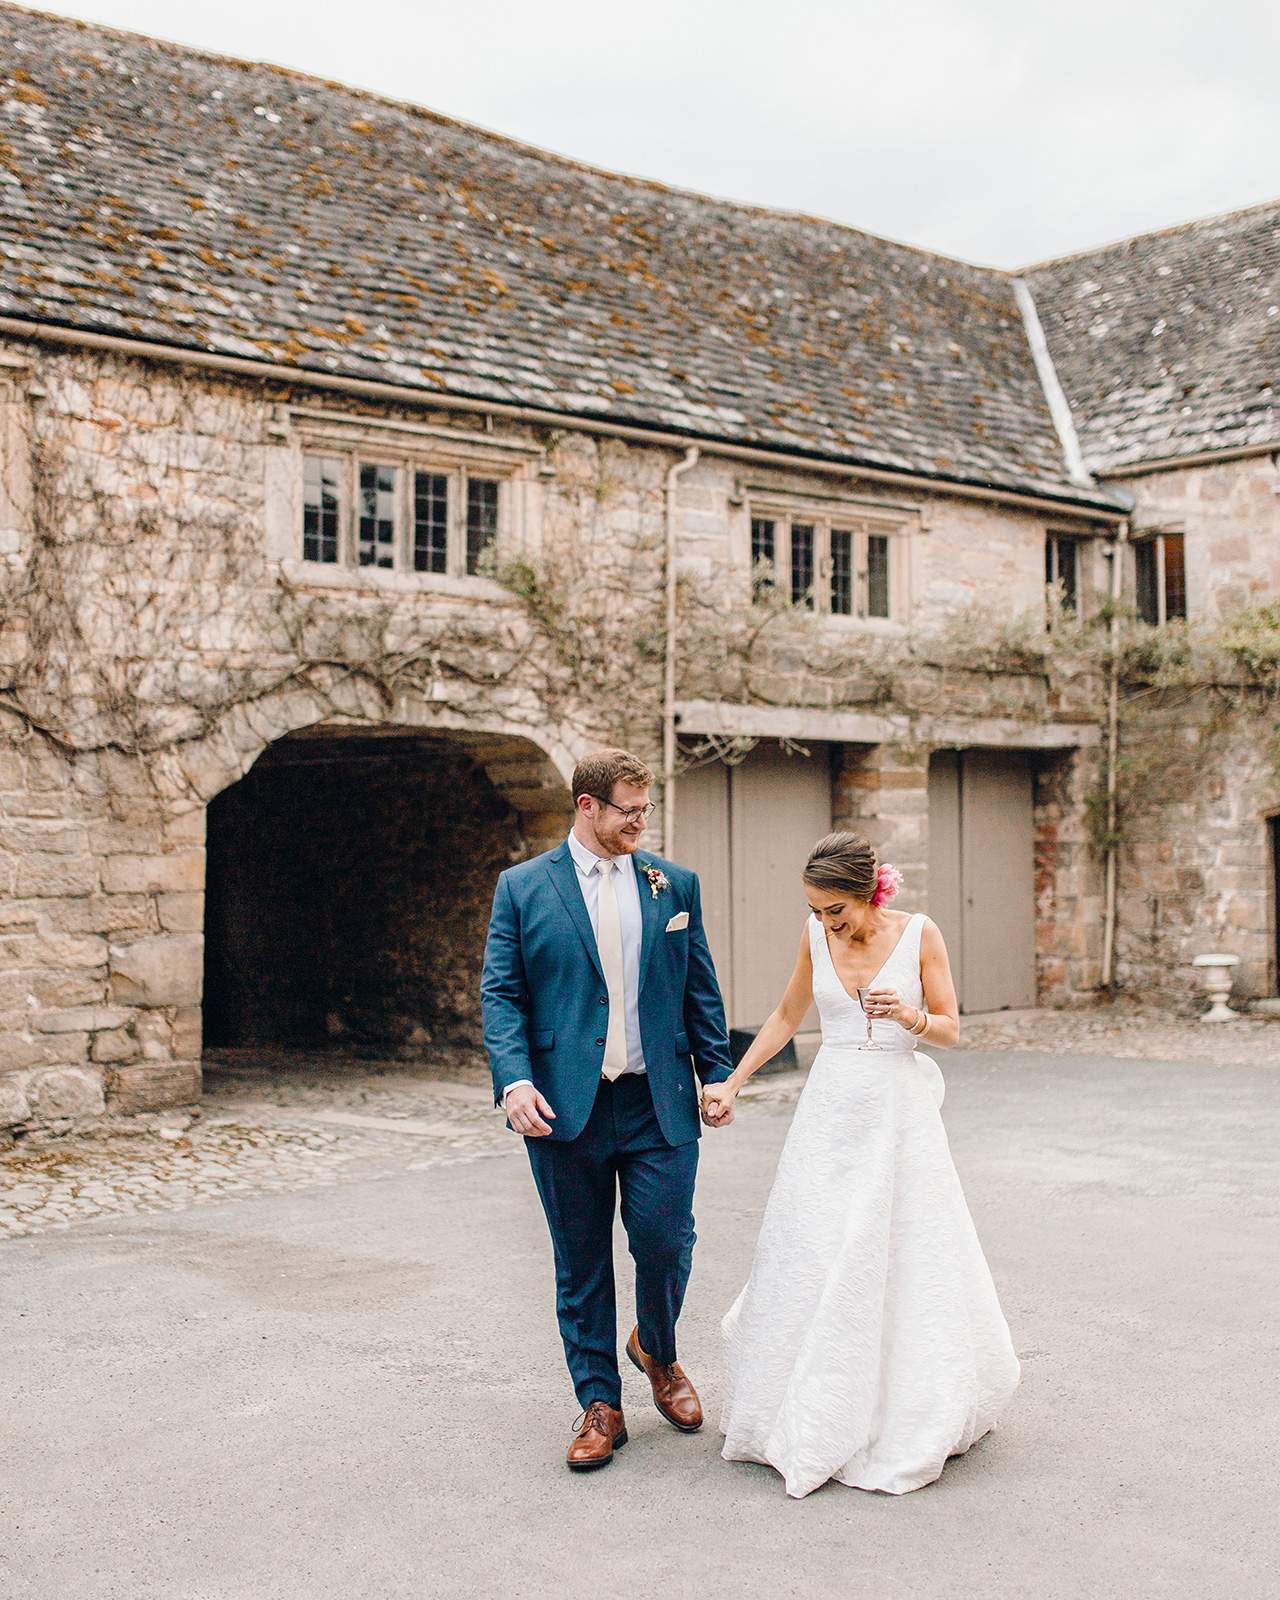 wedding couple walking outside of rustic building